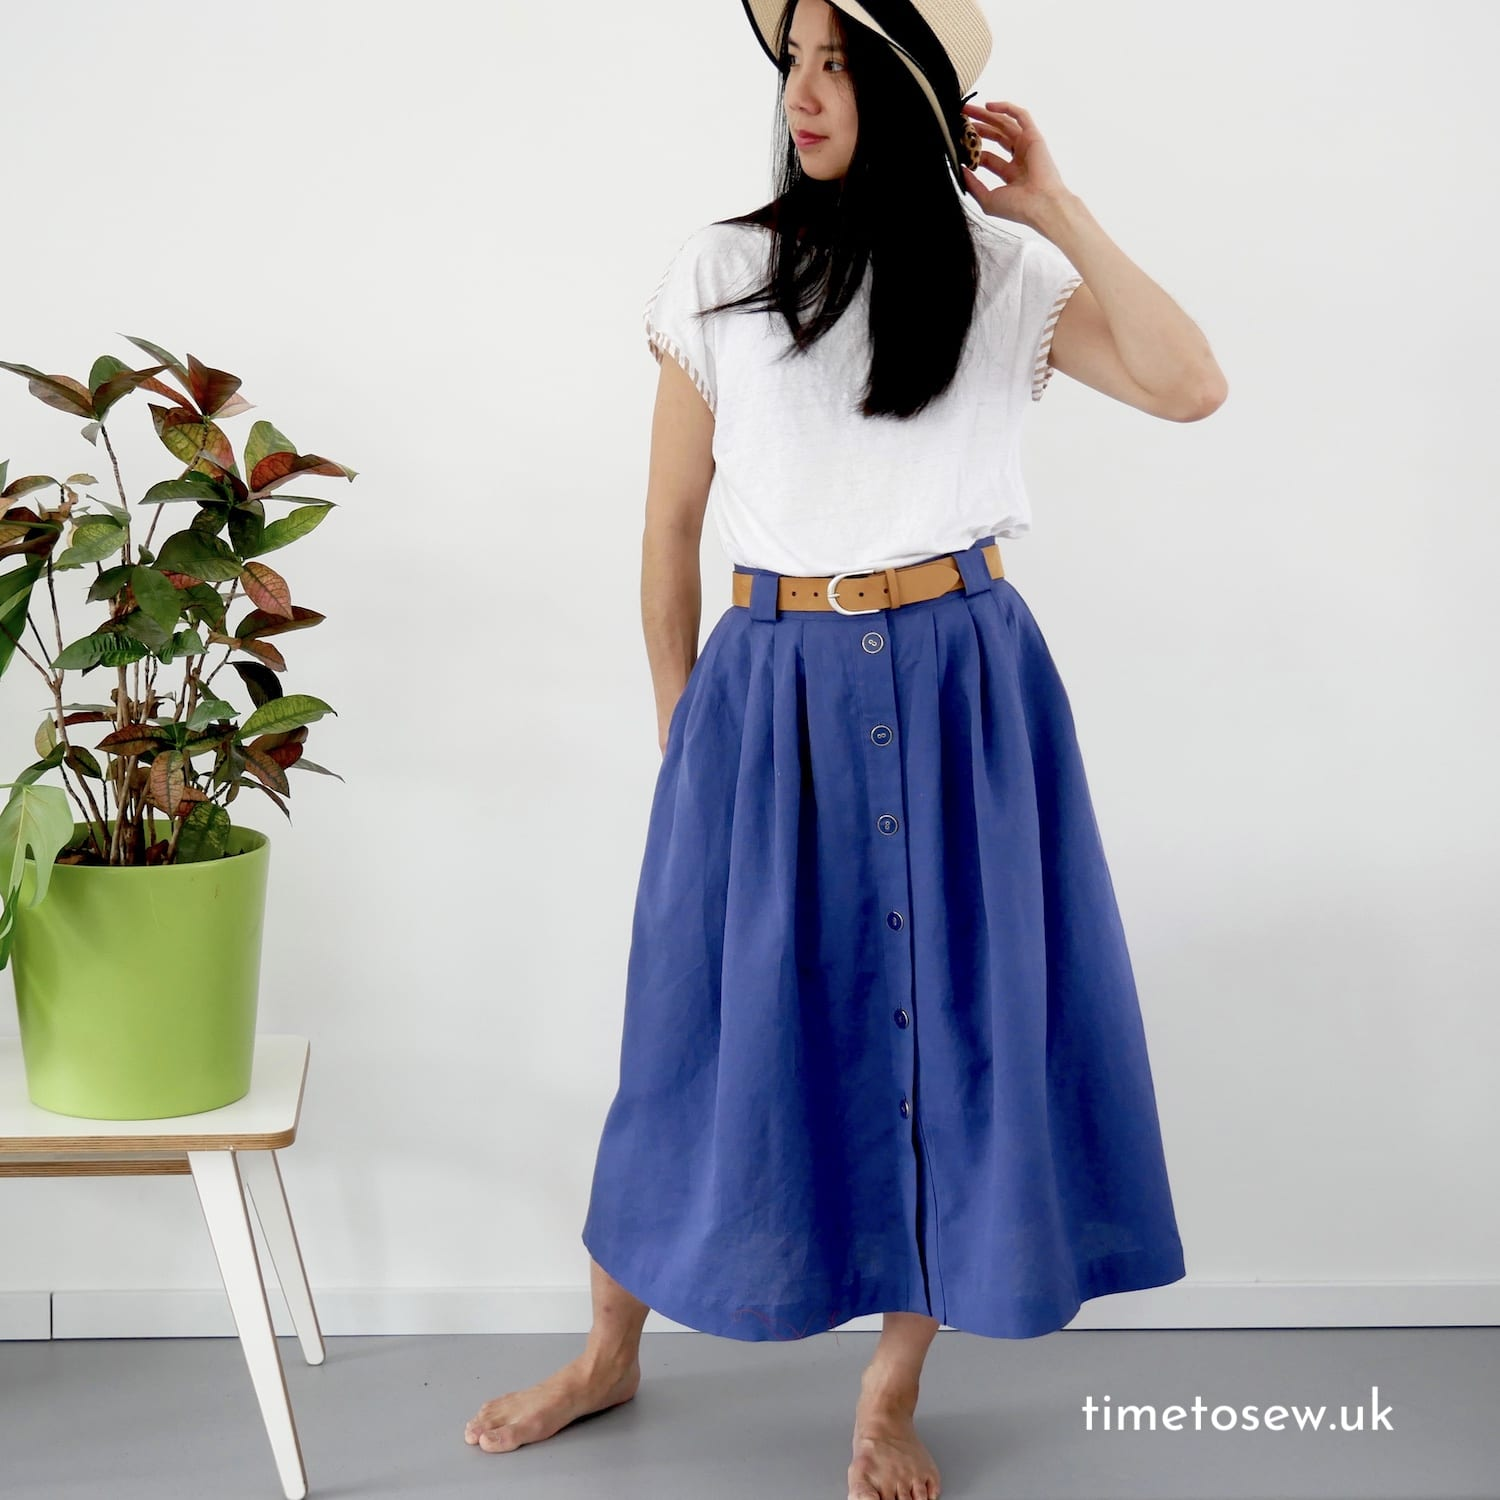 Fibre Mood Alix skirt (pleated A line skirt) by Time to Sew in blue cotton linen blend fabric